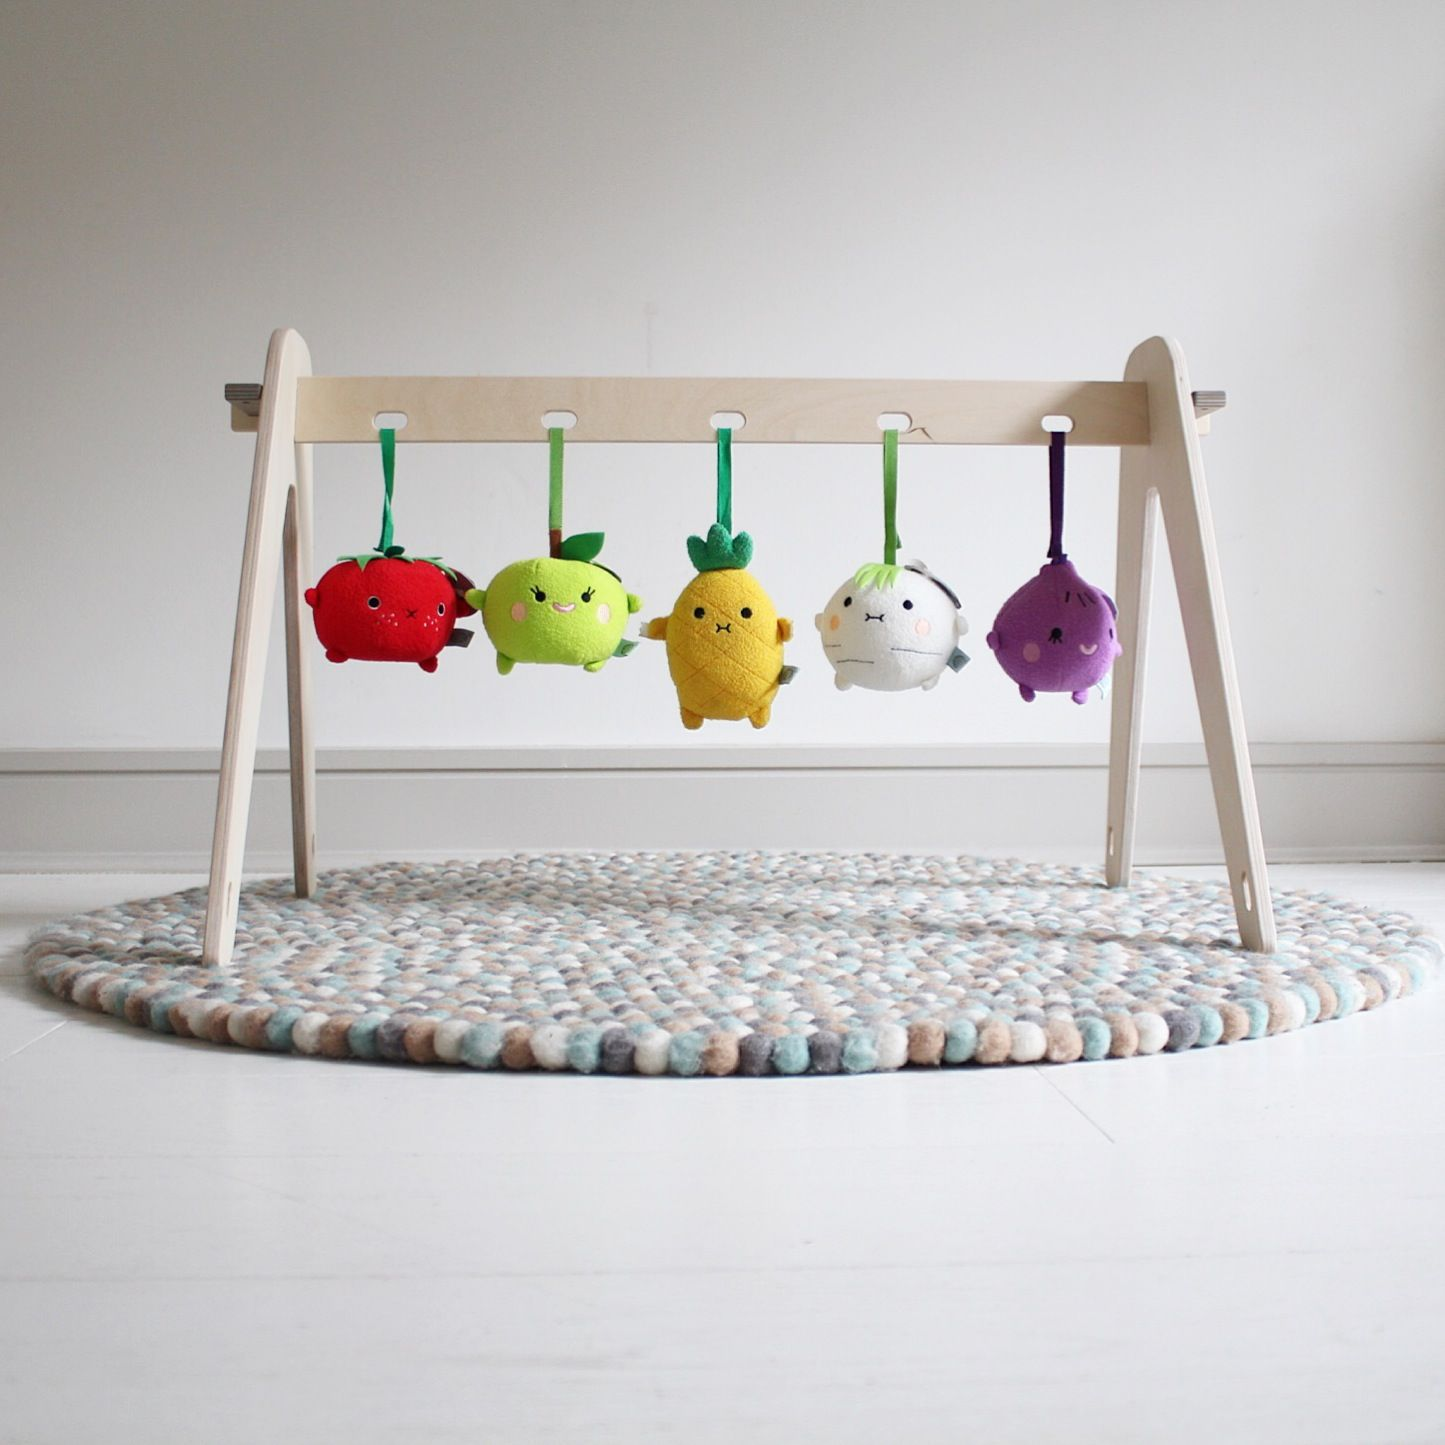 Handmade wooden baby play gym with Noodoll fruit and veggie plush